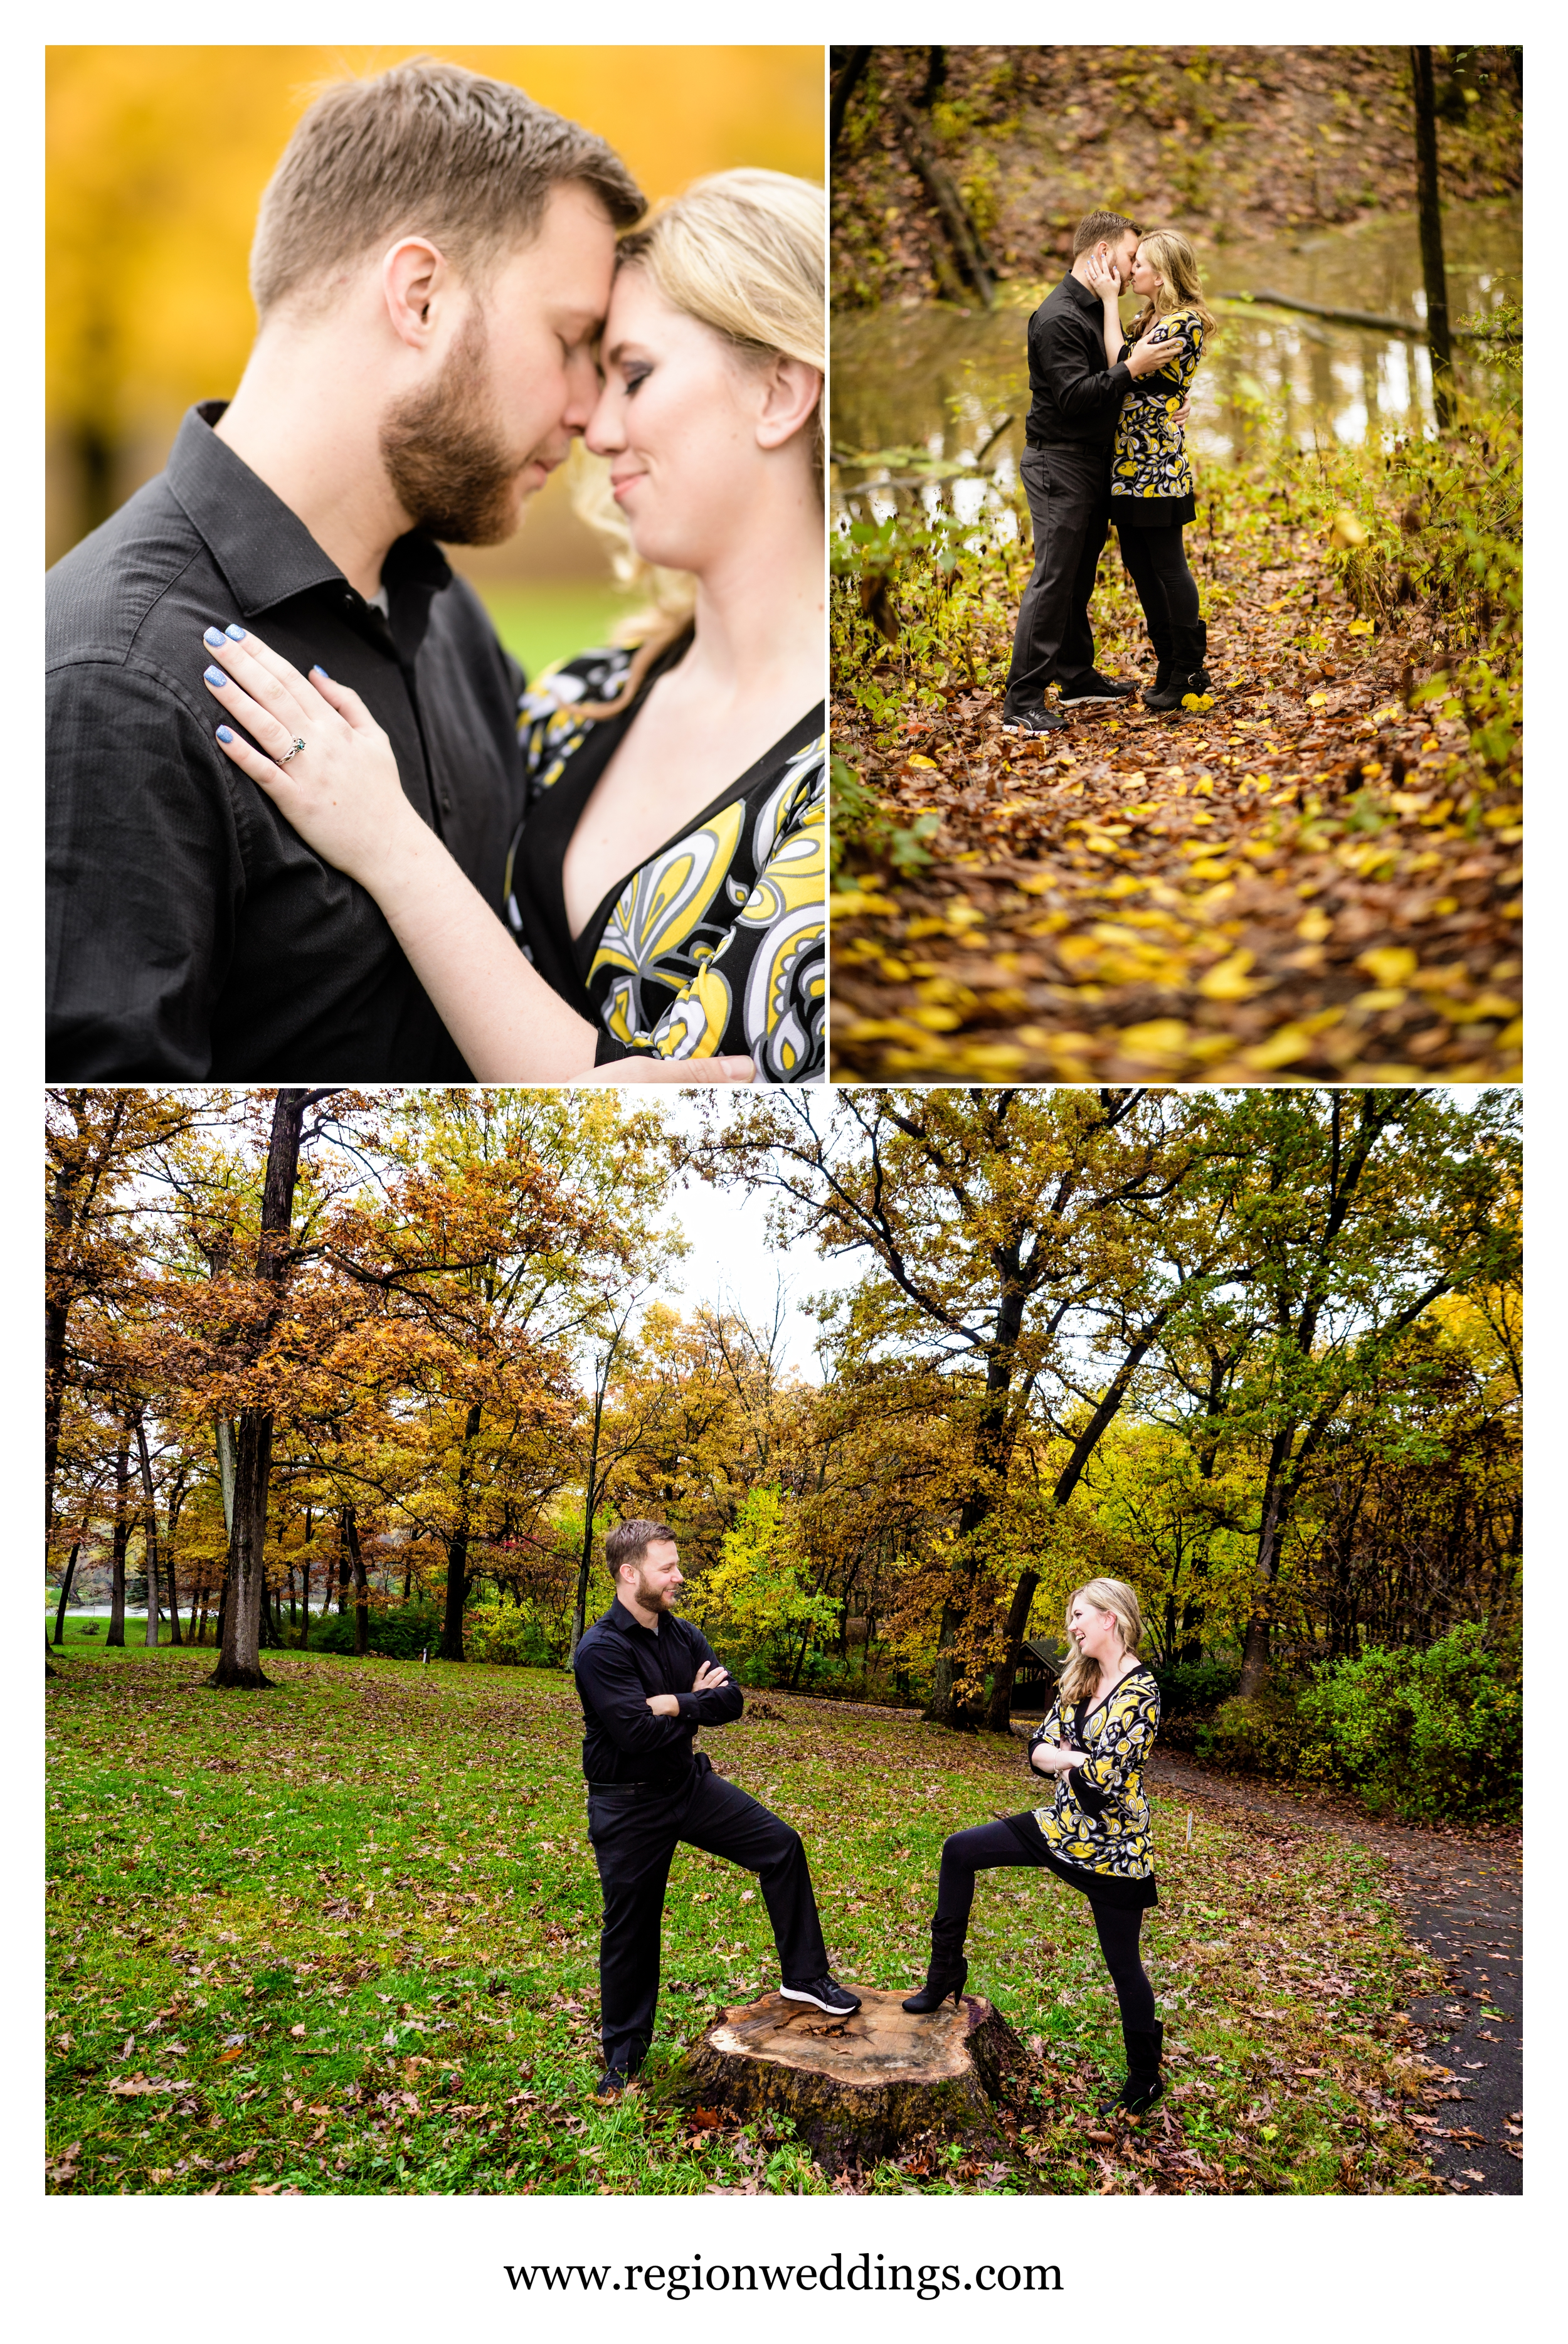 Autumn leaves are everywhere for a Fall engagement session in Crown Point, Indiana.